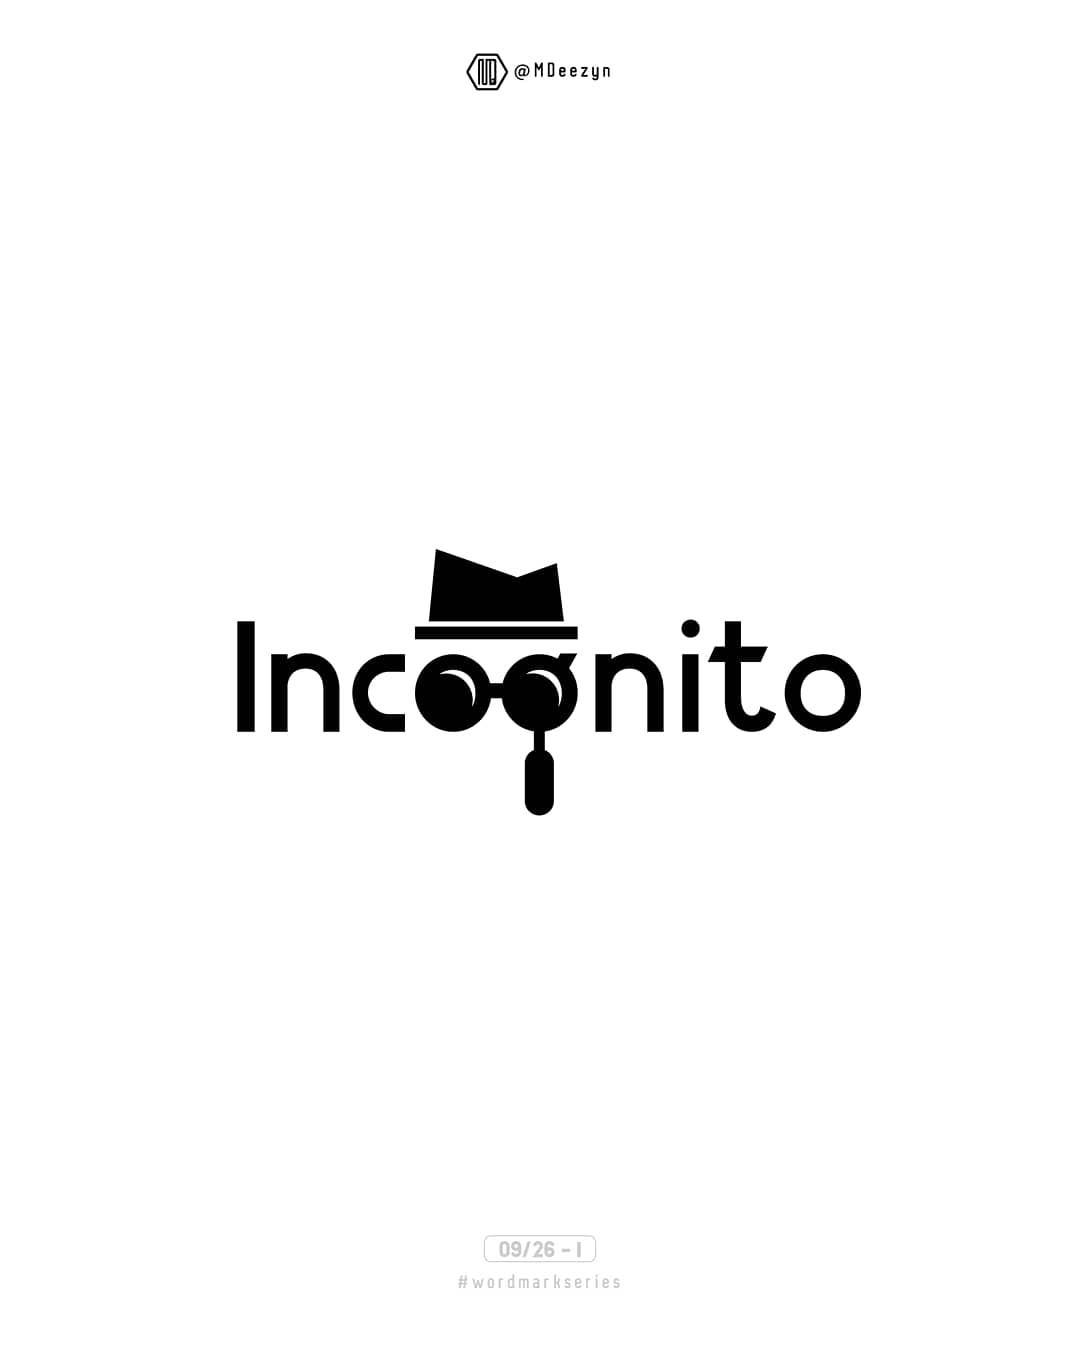 i - incognito - #wordmarkseries (09/26) . your feedback will be